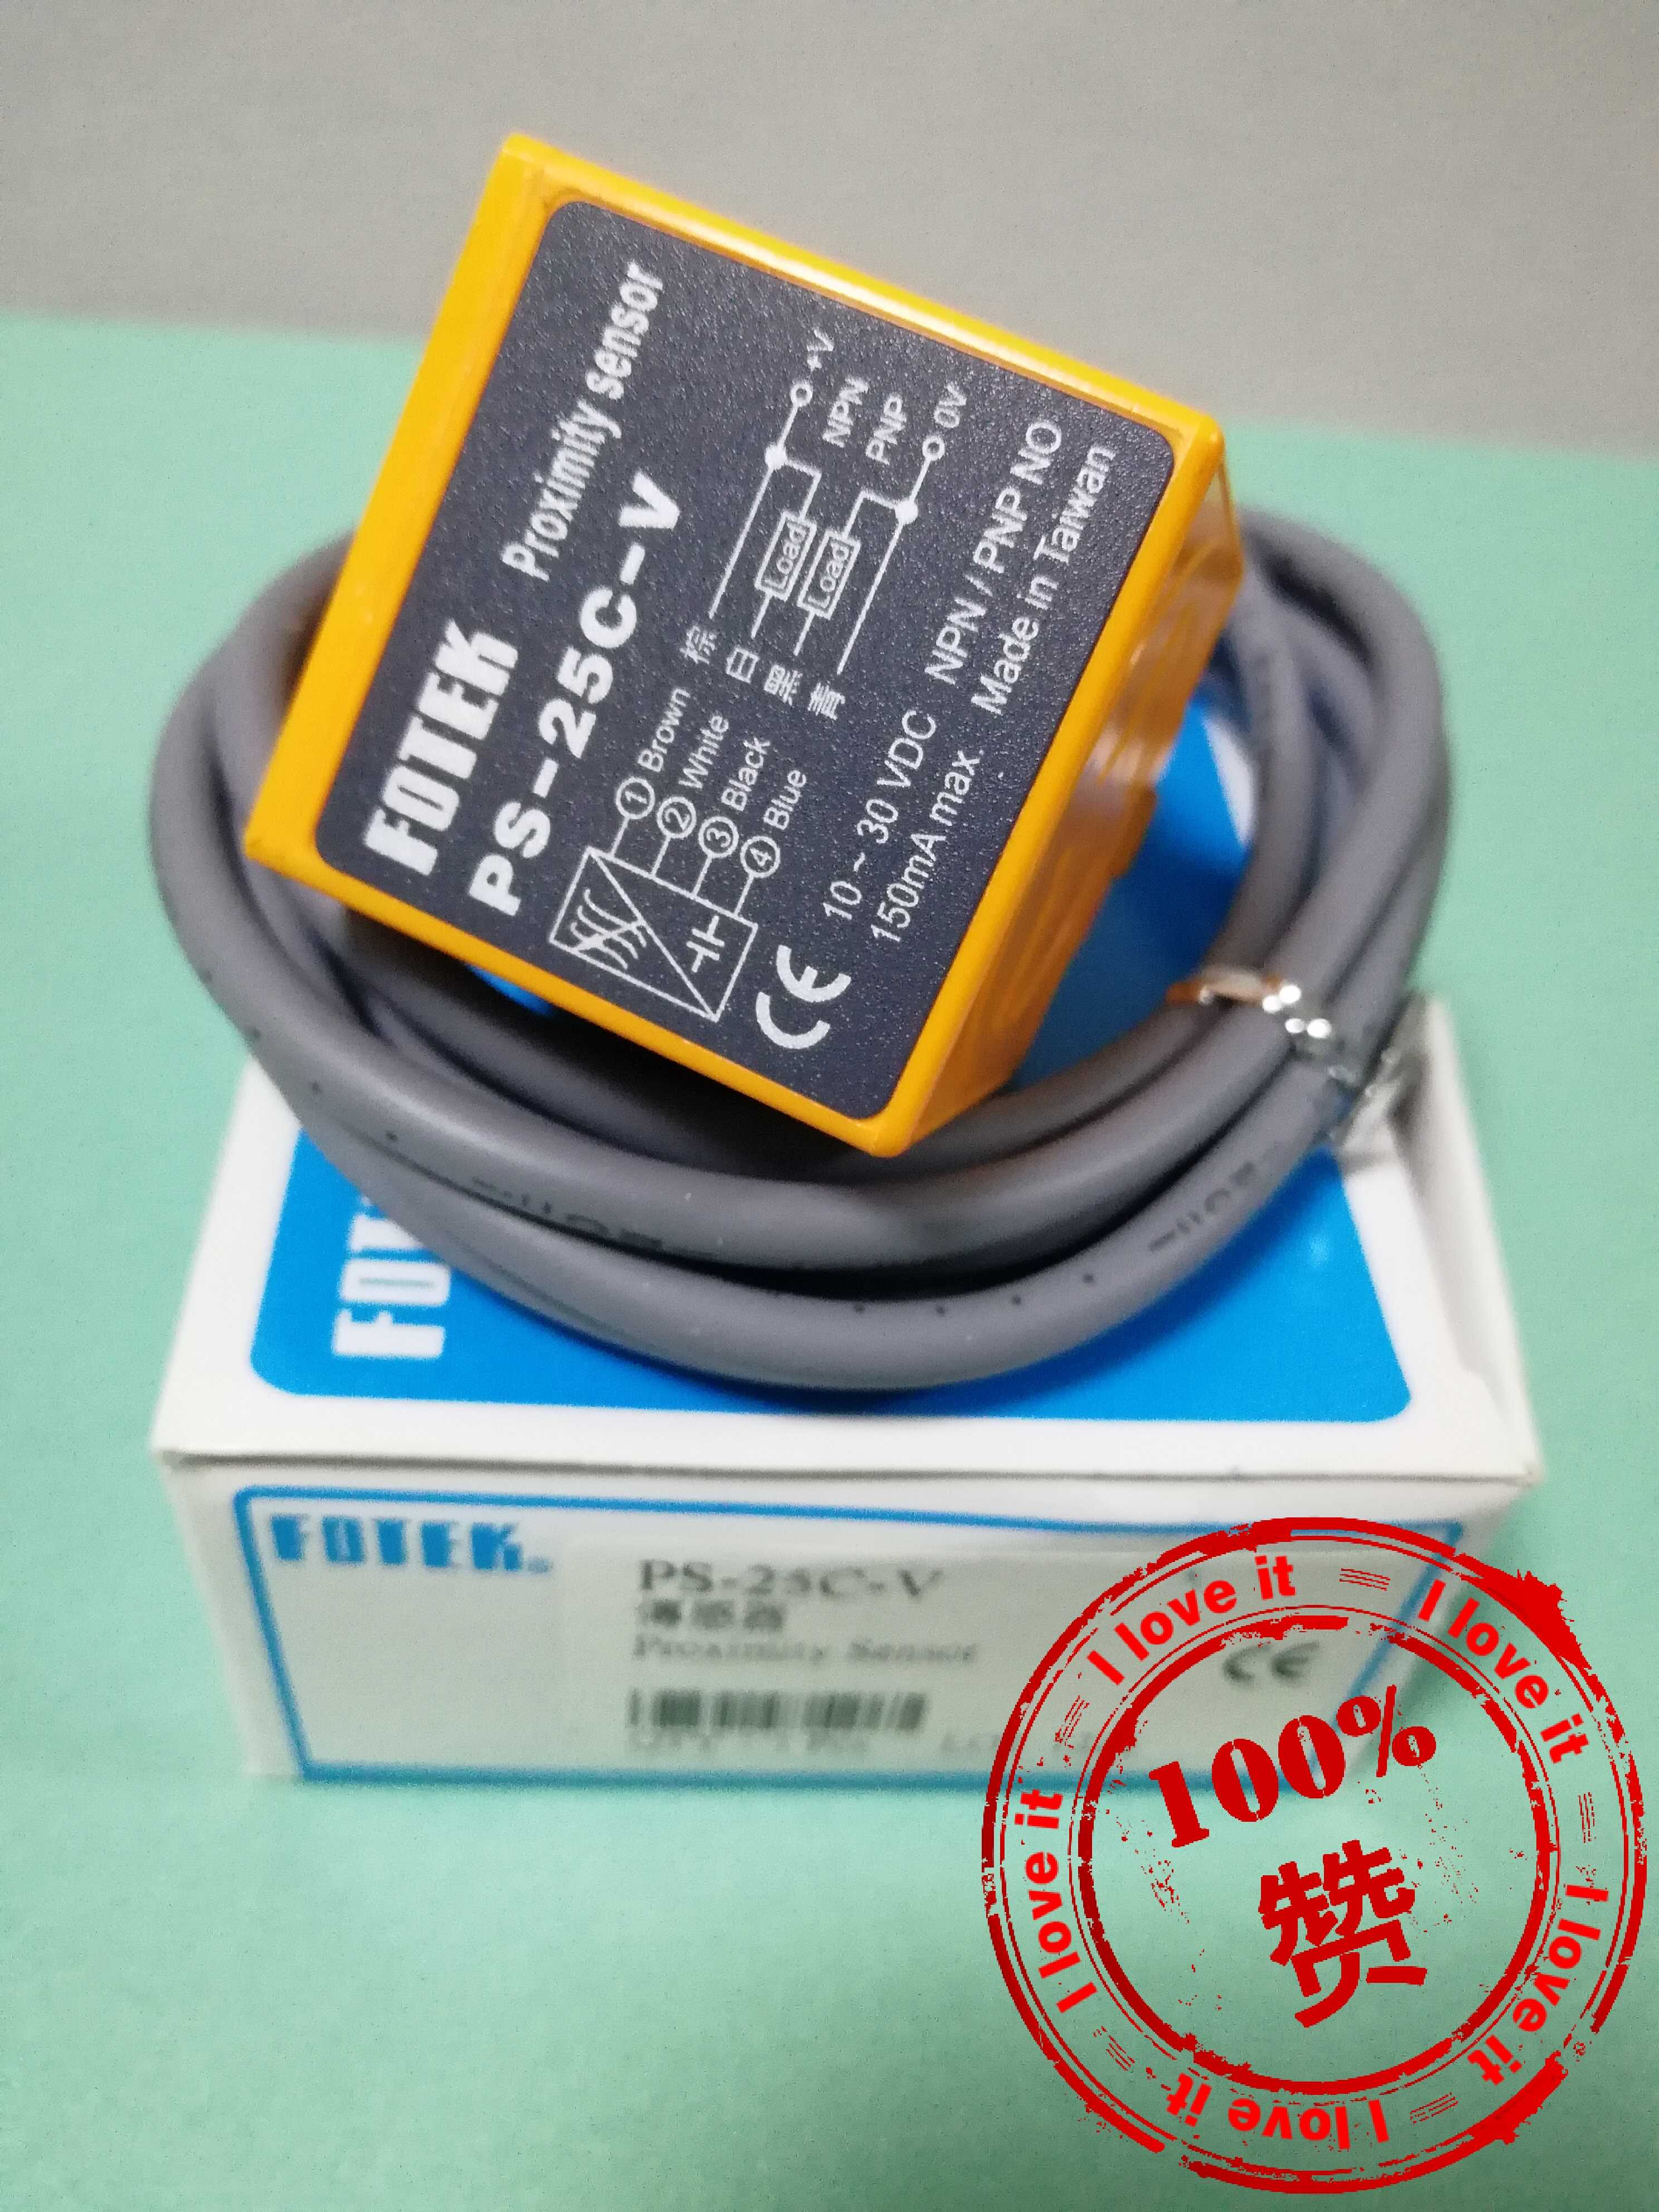 100% of the new original PS-25C-V proximity switch sensor,100% of the new original PS-25C-V proximity switch sensor,